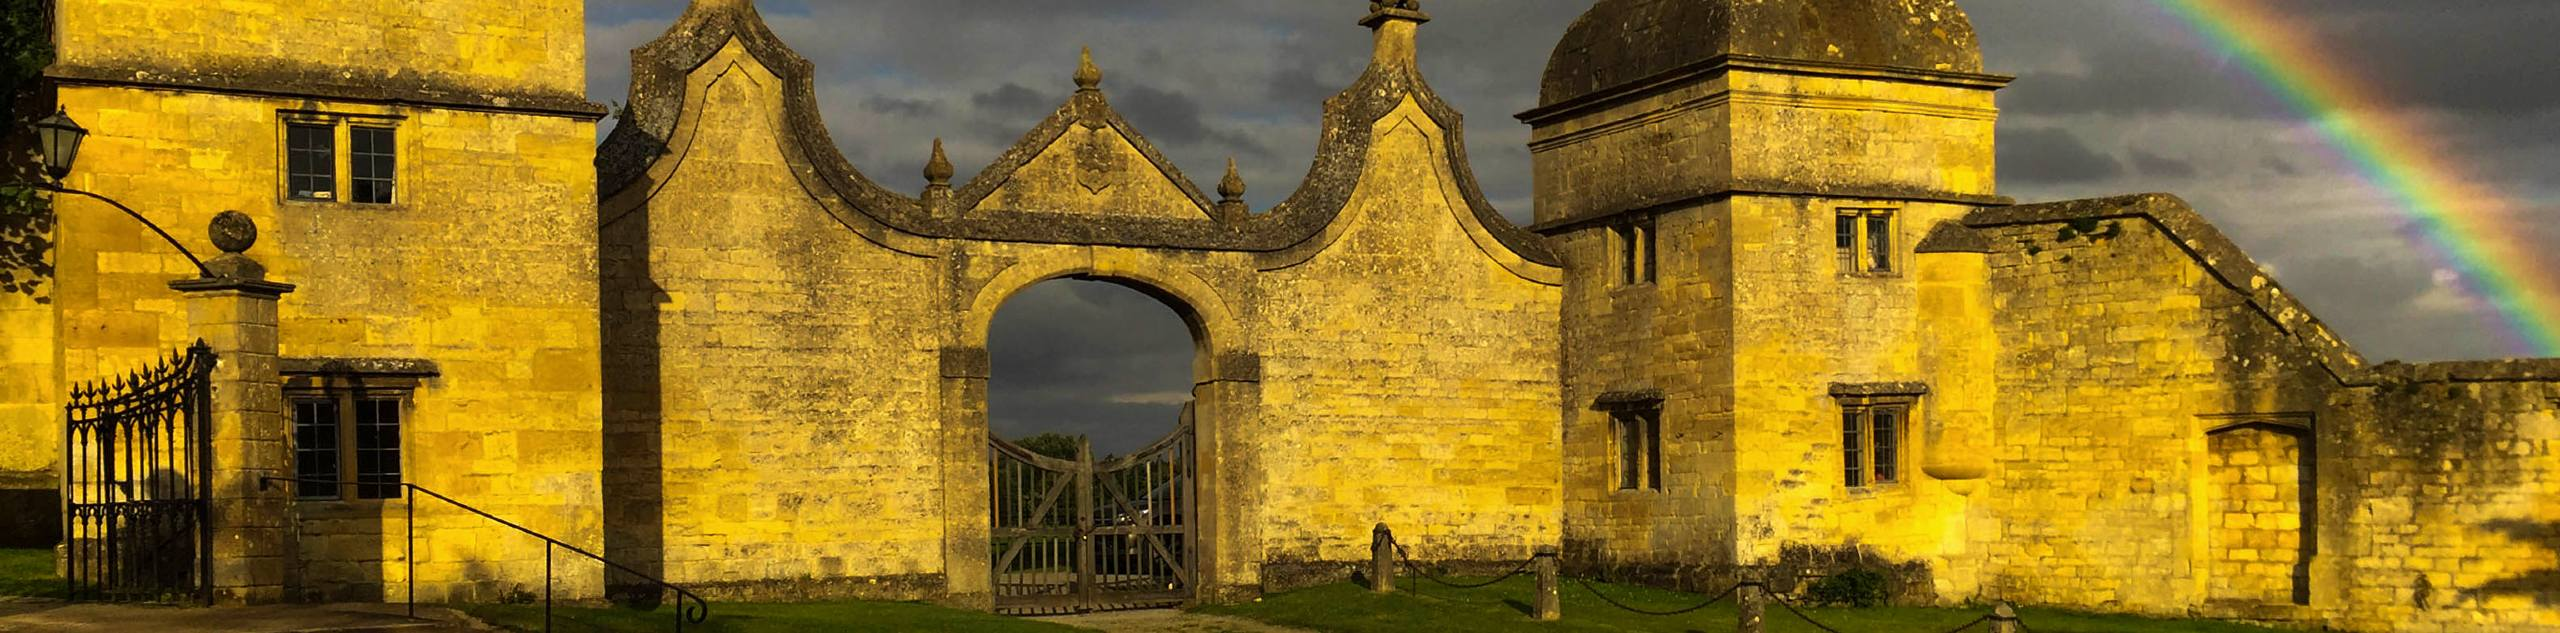 Cotswold Way - Stanton to Chipping Campden Walk